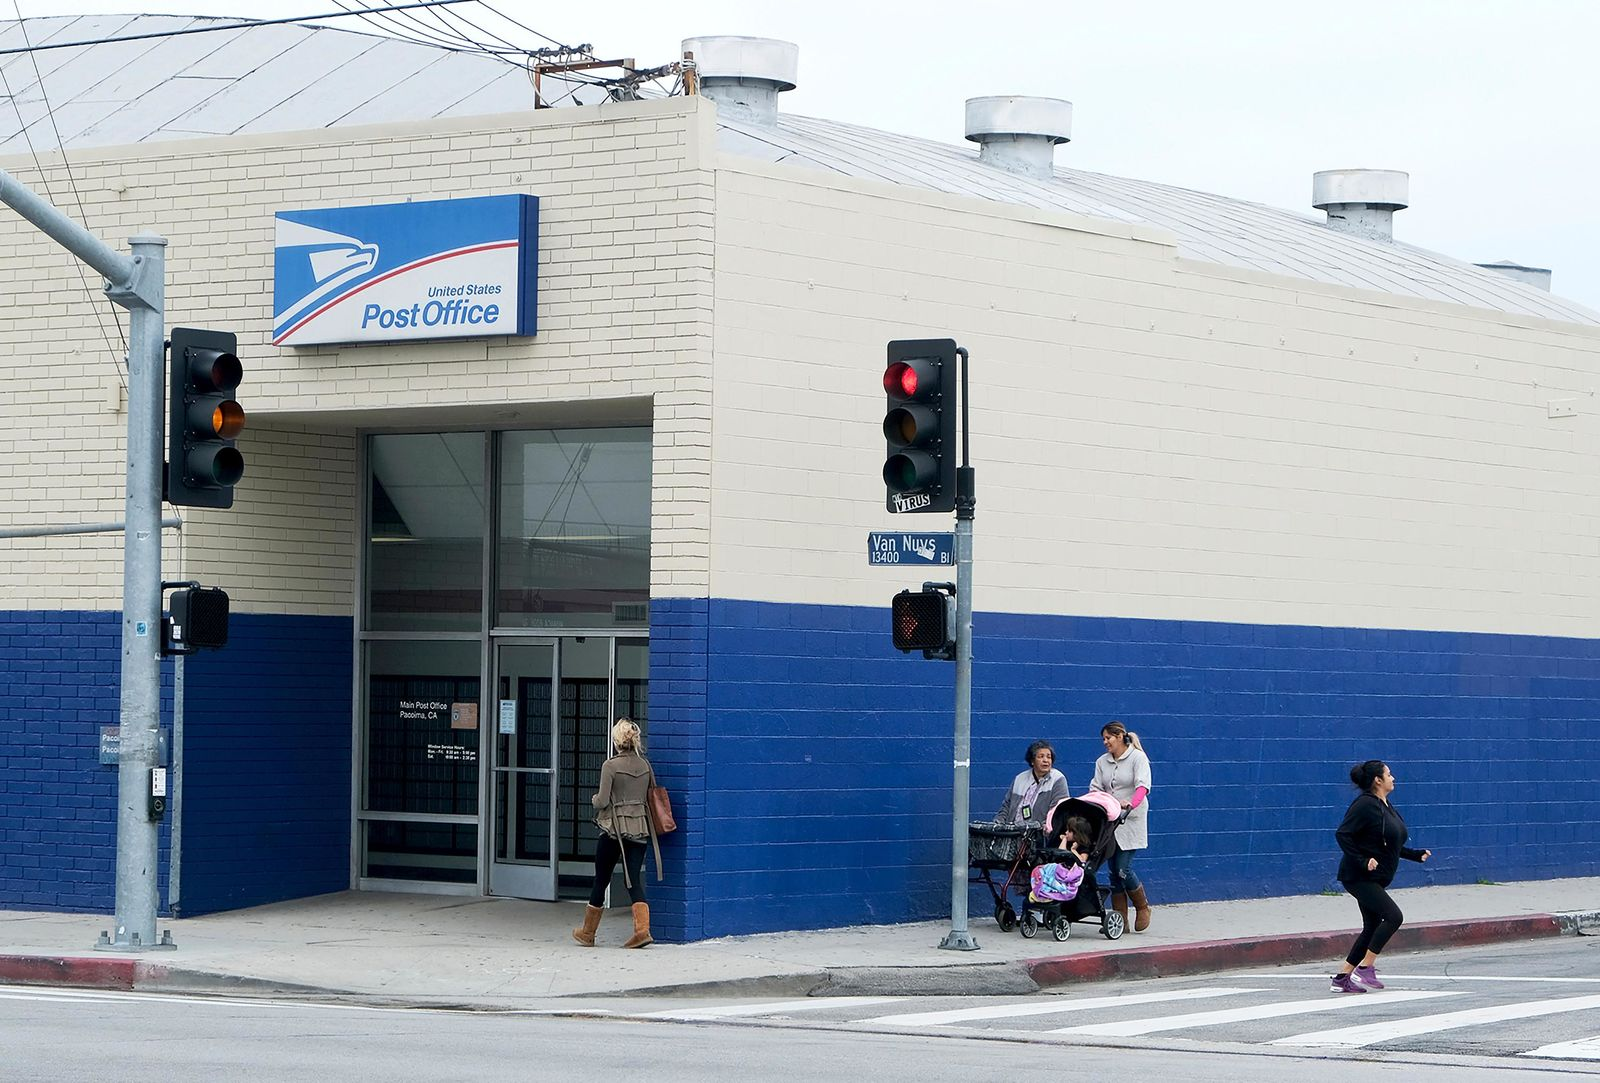 This March 1, 2019 photo shows the Pacoima post office in Los Angeles' San Fernando Valley. President Donald Trump has signed resolutions renaming two post offices in Southern California in honor of Marilyn Monroe and rock 'n' roll legend Ritchie Valens. (Dean Musgrove/The Orange County Register via AP)